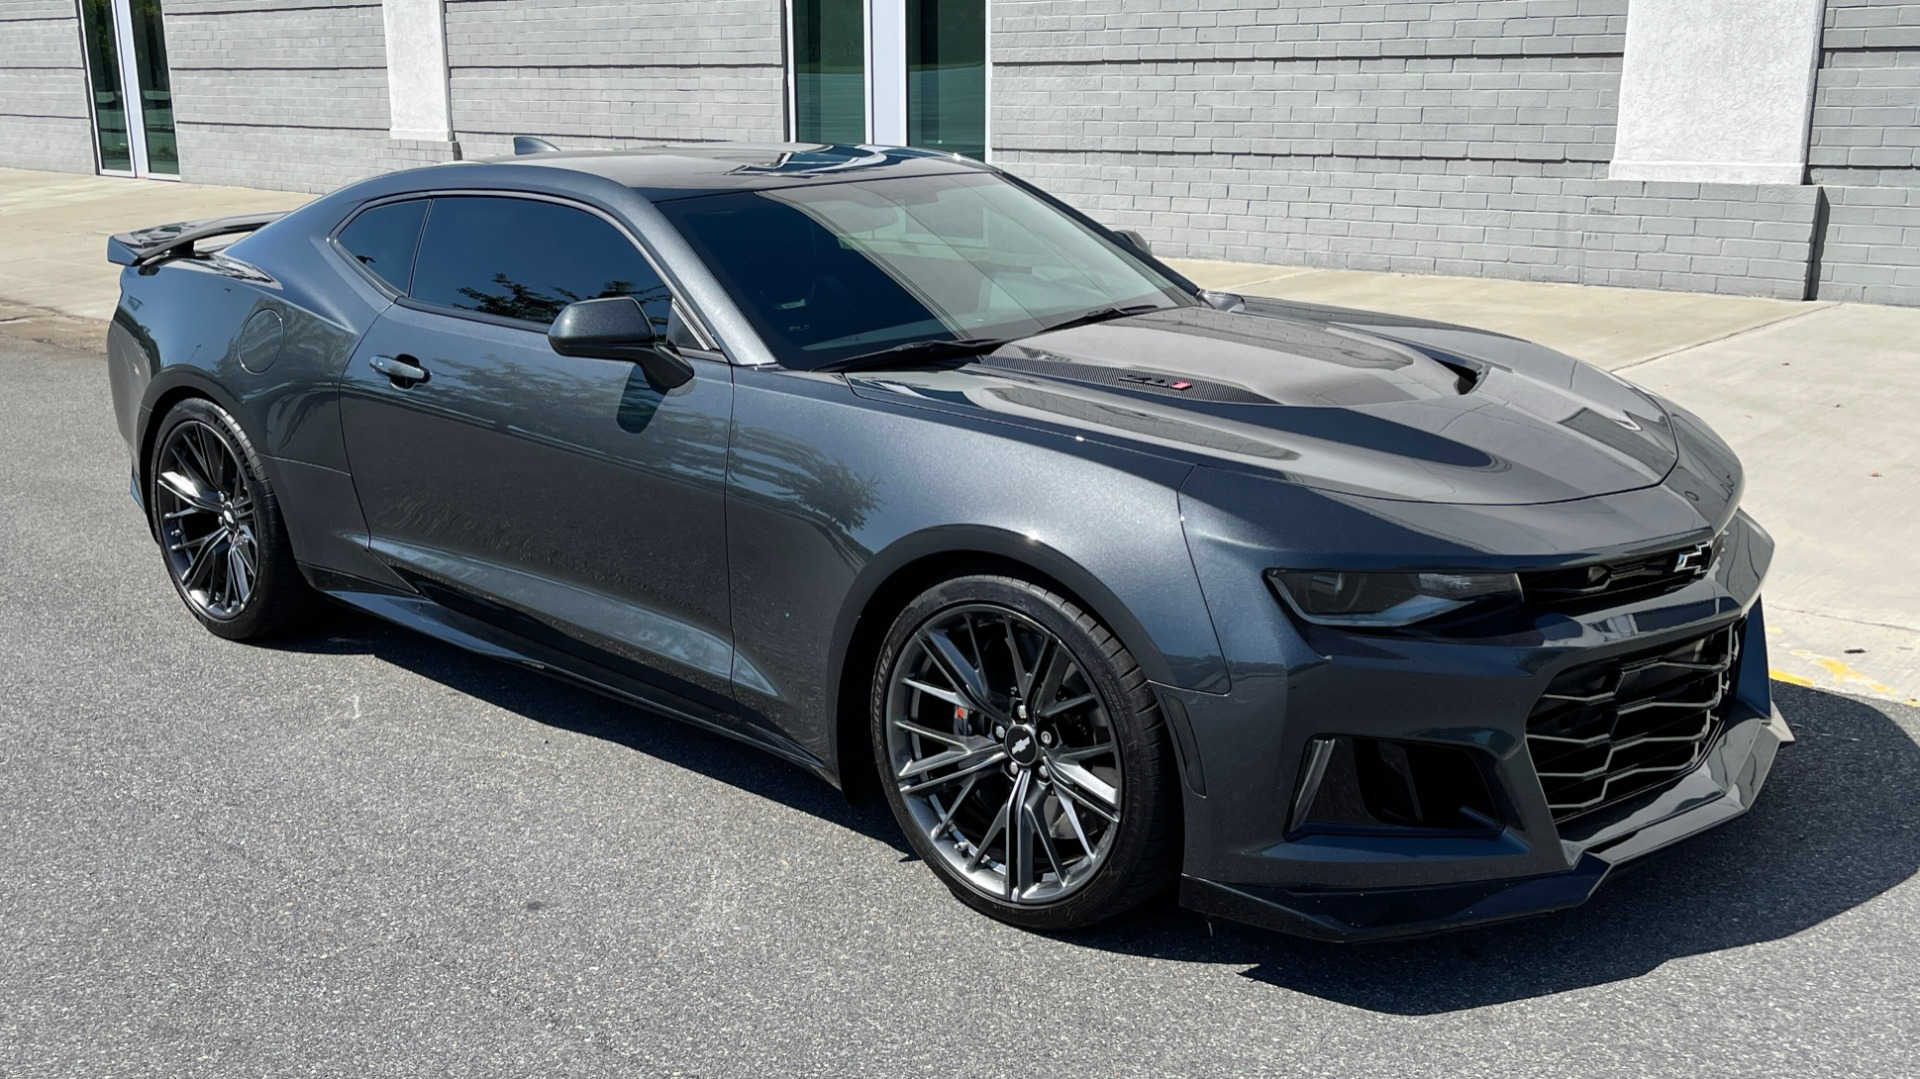 Used 2018 Chevrolet CAMARO ZL1 SUPERCHARGED COUPE 850HP / 10-SPD AUTO / NAV / BOSE / REARVIEW for sale $59,995 at Formula Imports in Charlotte NC 28227 7